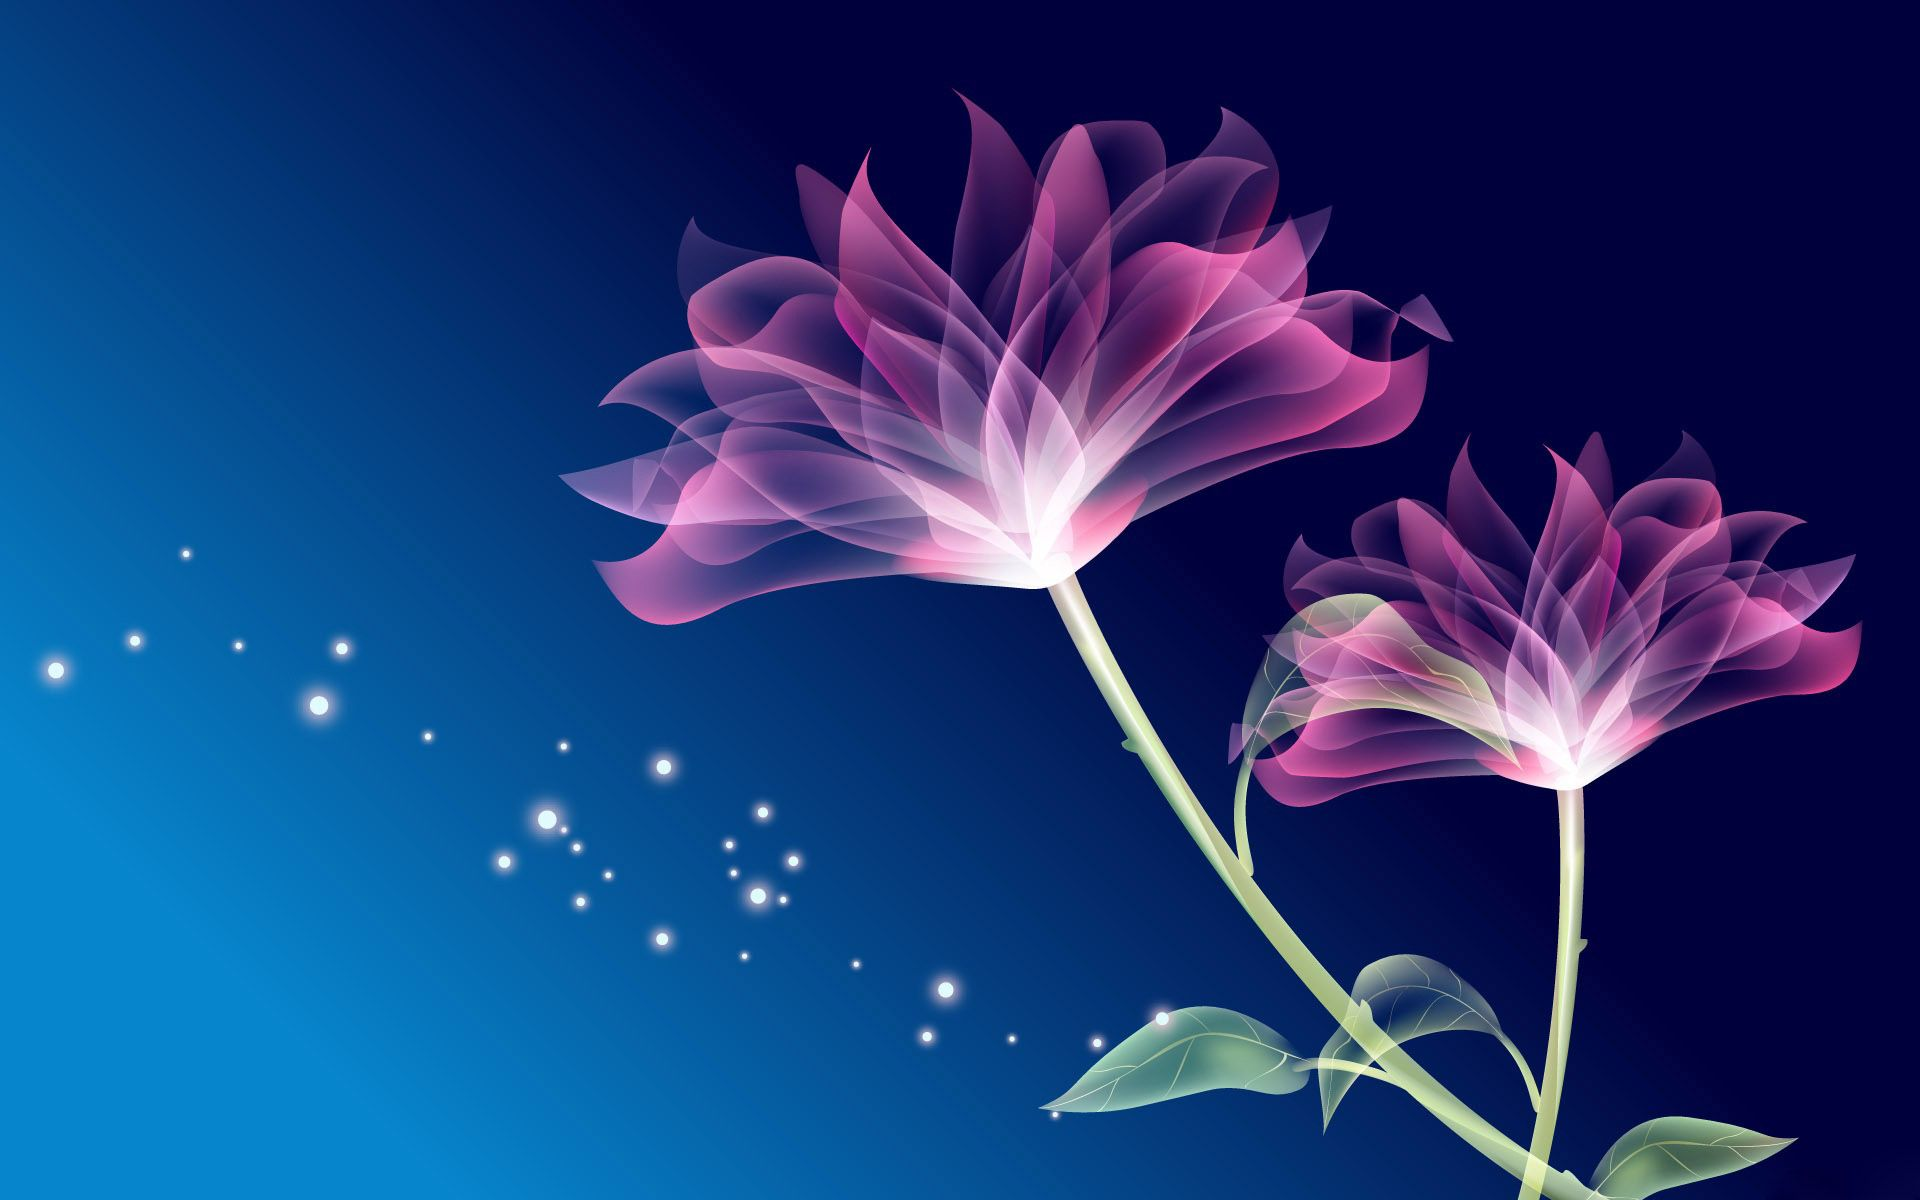 Awesome Backgrounds Flower Photos Awesome Gallery Wallpaper Wallpapers Desktop Blue Abstract Flowers Flower Desktop Wallpaper 3d Wallpaper Of Flowers